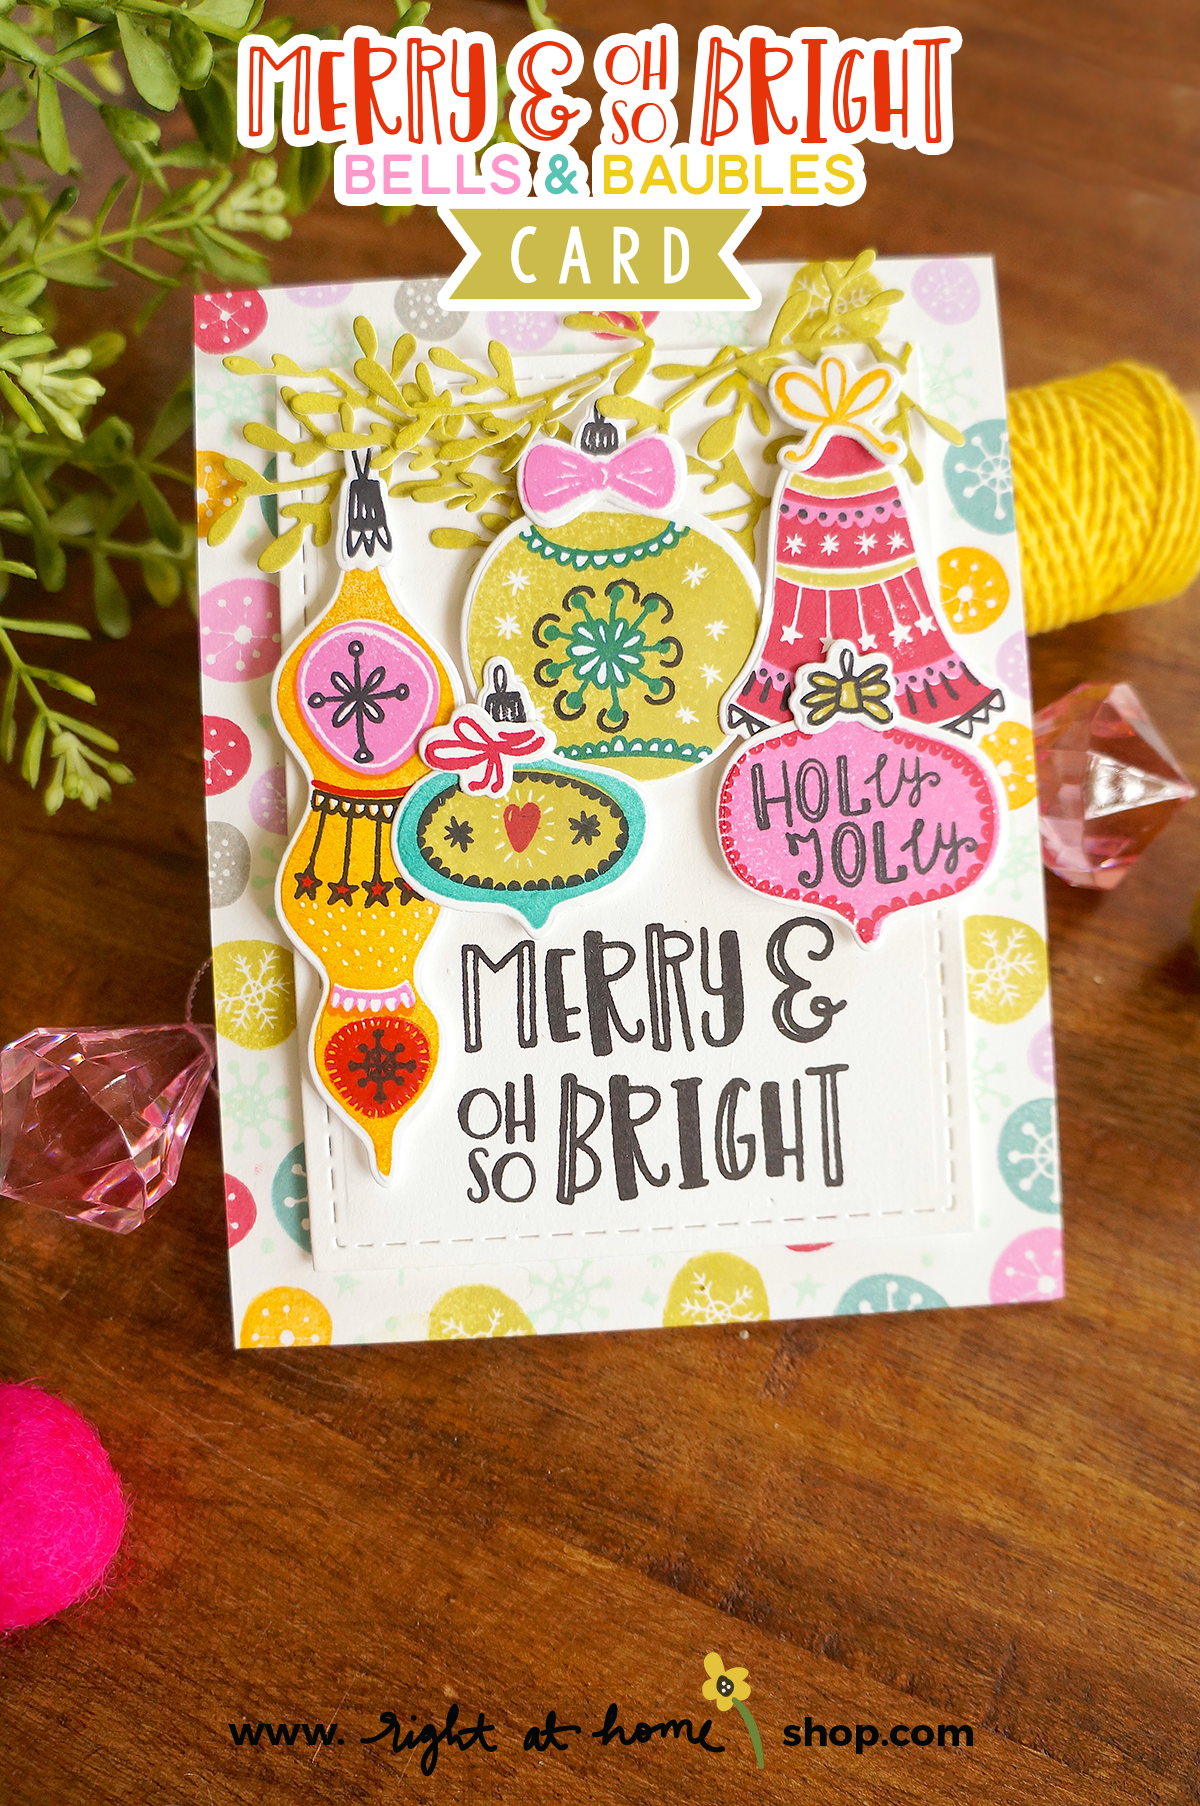 Click to view this Merry & Oh So Bright card created using the Right at Home Bells & Baubles, Snow Flurries Background and Fa La La stamp sets. All details on www.rightathomeshop.com/blog.